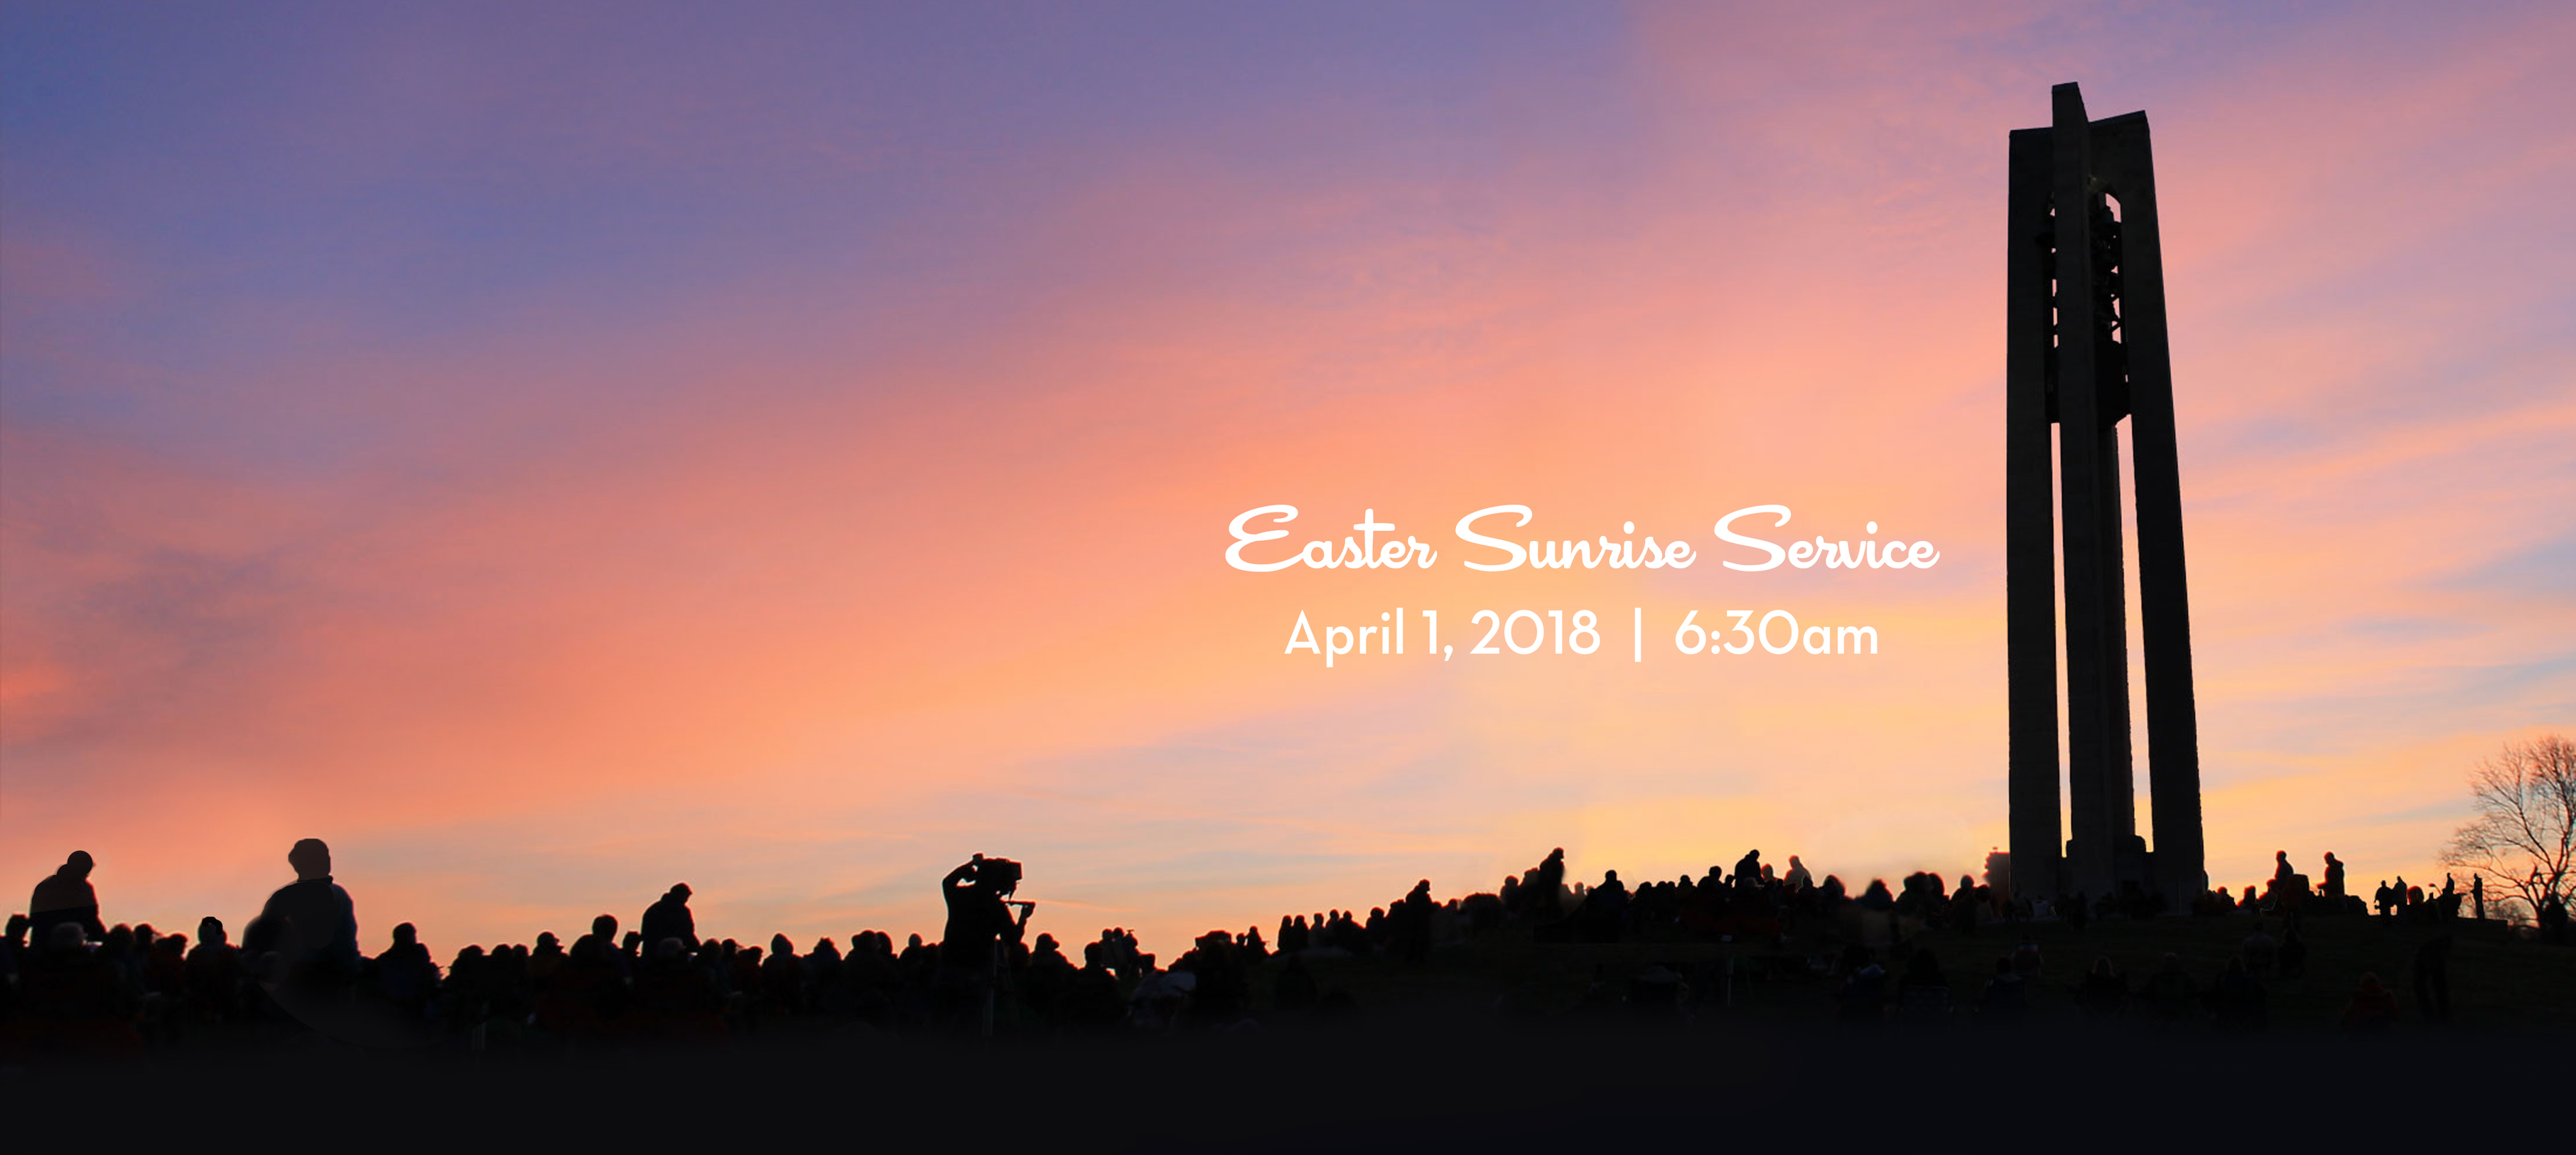 Join us for our Easter Sunrise Service!